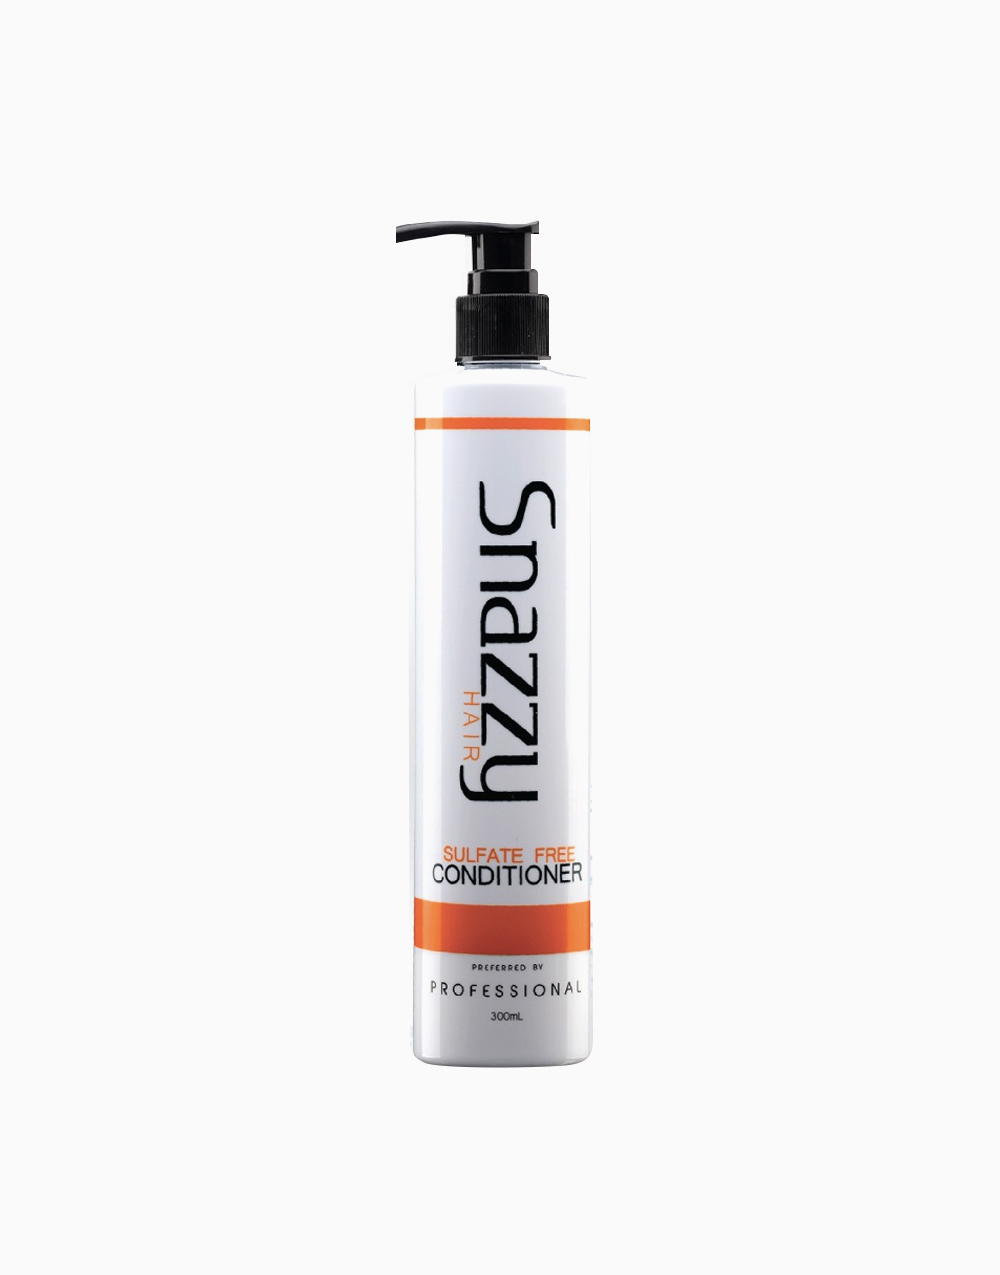 Sulfate Free Conditioner (300ml) by Snazzy Hair